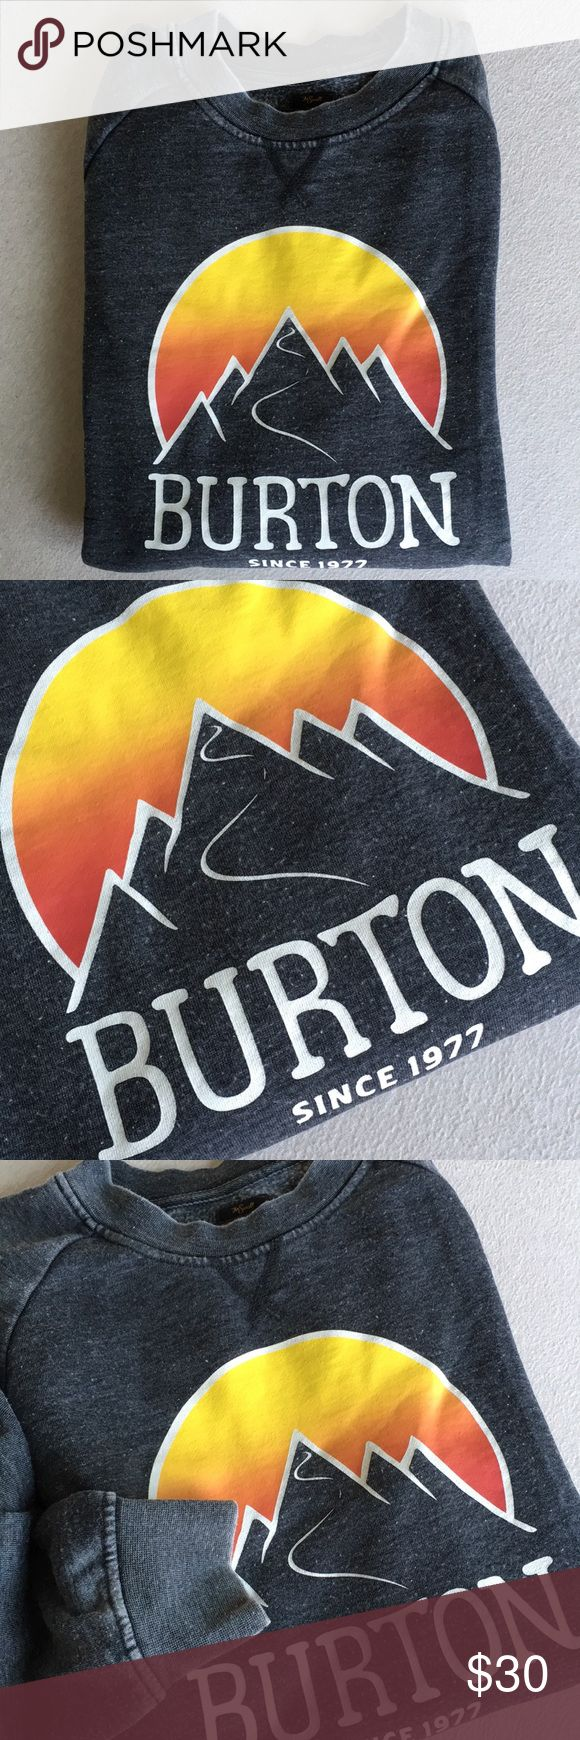 Men's Gray Burton Snowboards Crewneck Sweatshirt Great condition. Men's Burton Snowboards dark heather gray crewneck sweatshirt. Extremely comfortable made to look like a lightly distressed crew from long ago. Mountain screenprinted graphic on the front. Some light pilling throughout adds to the vintage look. Classic fit with a great raglan cut. Size Small. Burton Shirts Sweatshirts & Hoodies